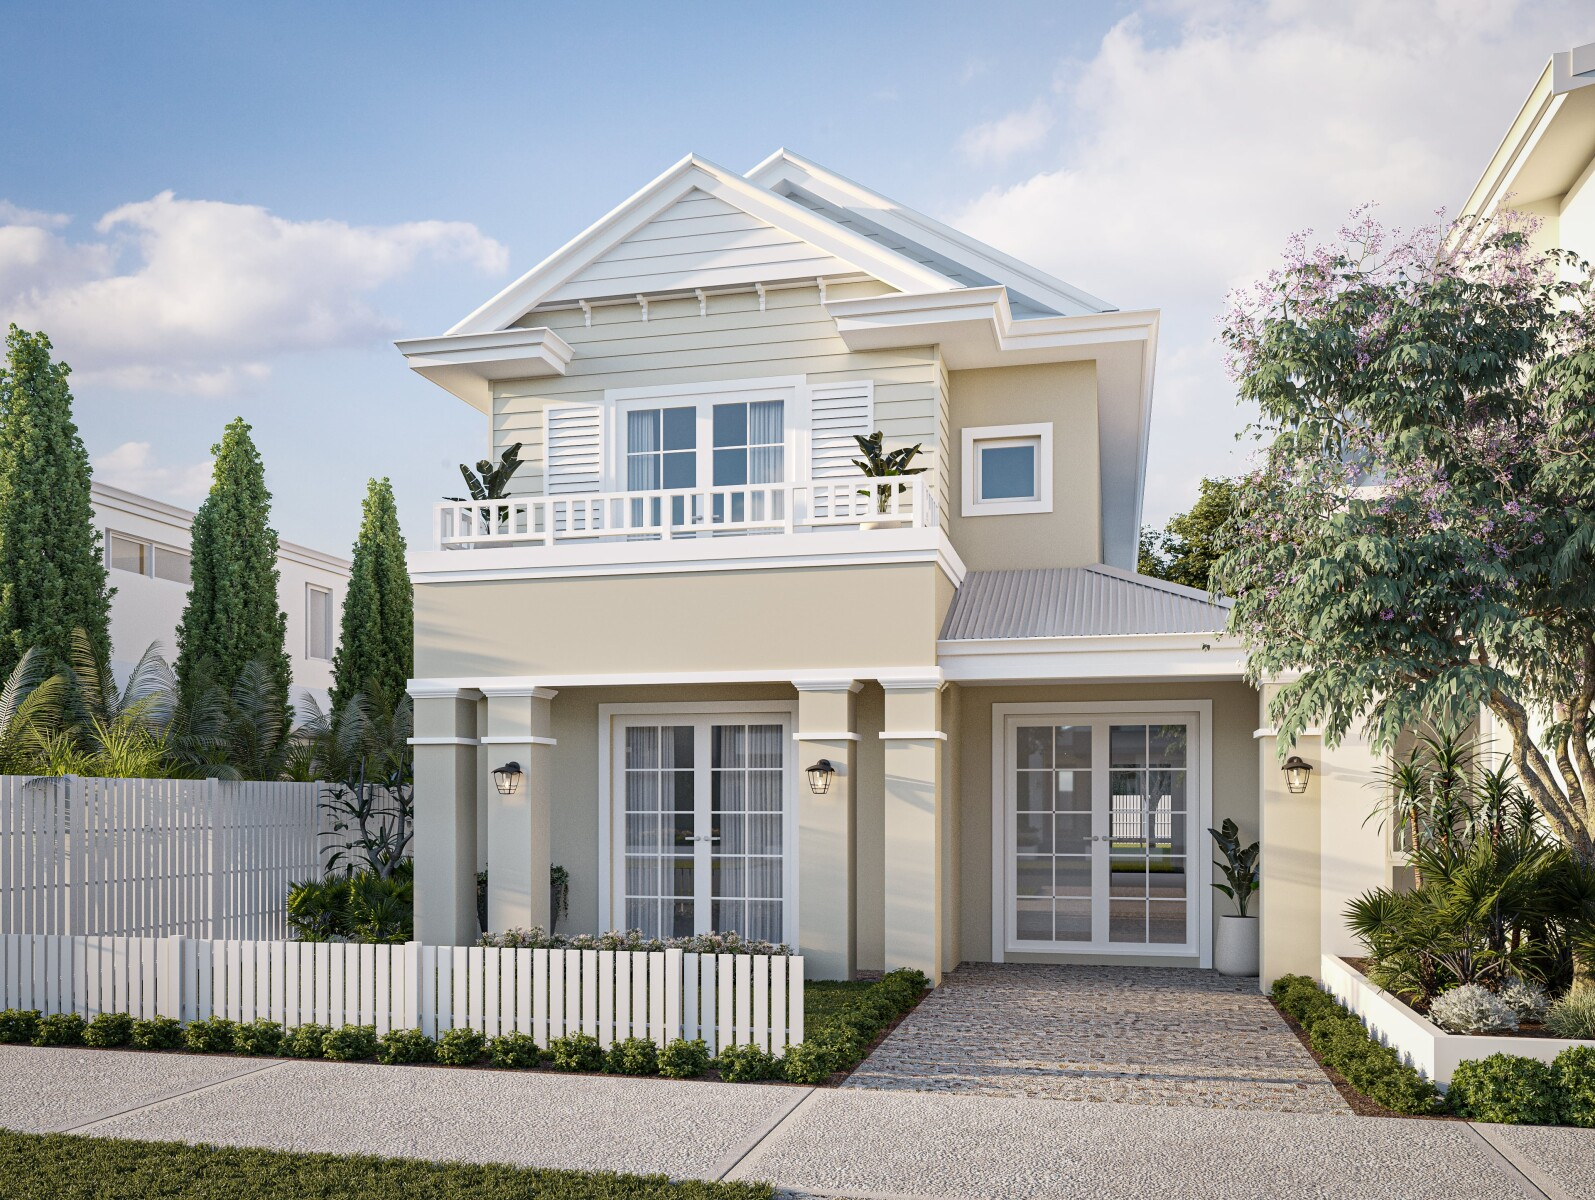 The Southaven by New Level Sleek